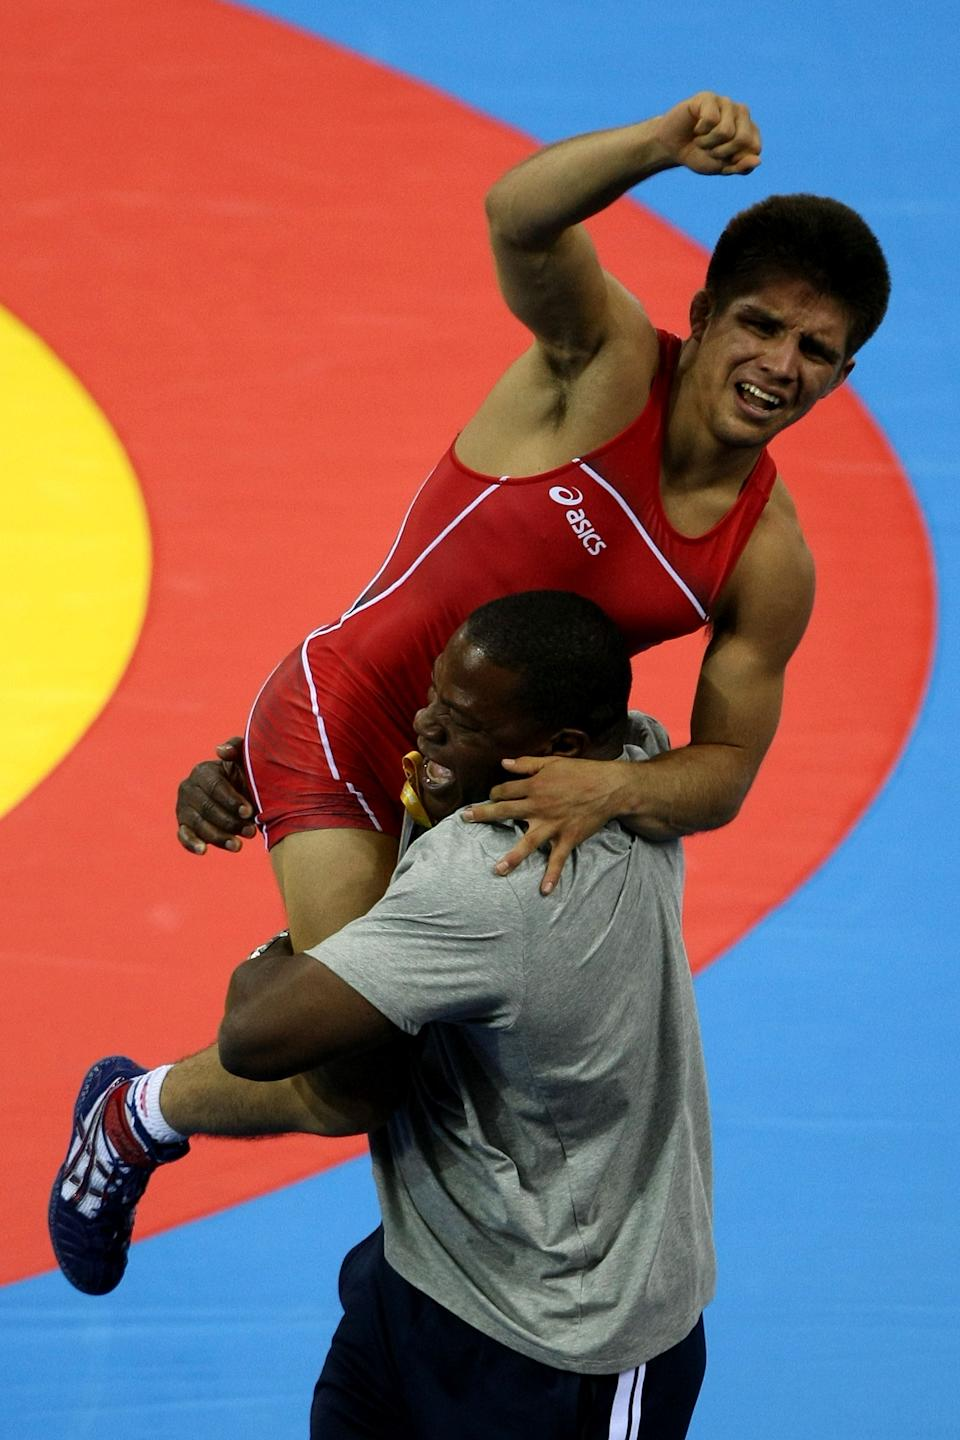 BEIJING - AUGUST 19: Henry Cejudo of the United States celebrates after defeating Shingo Matsumoto of Japan to win the gold medal in the men's 55kg freestyle wrestling event at the China Agriculture University Gymnasium on Day 11 of the Beijing 2008 Olympic Games on August 19, 2008 in Beijing, China. (Photo by Jed Jacobsohn/Getty Images)